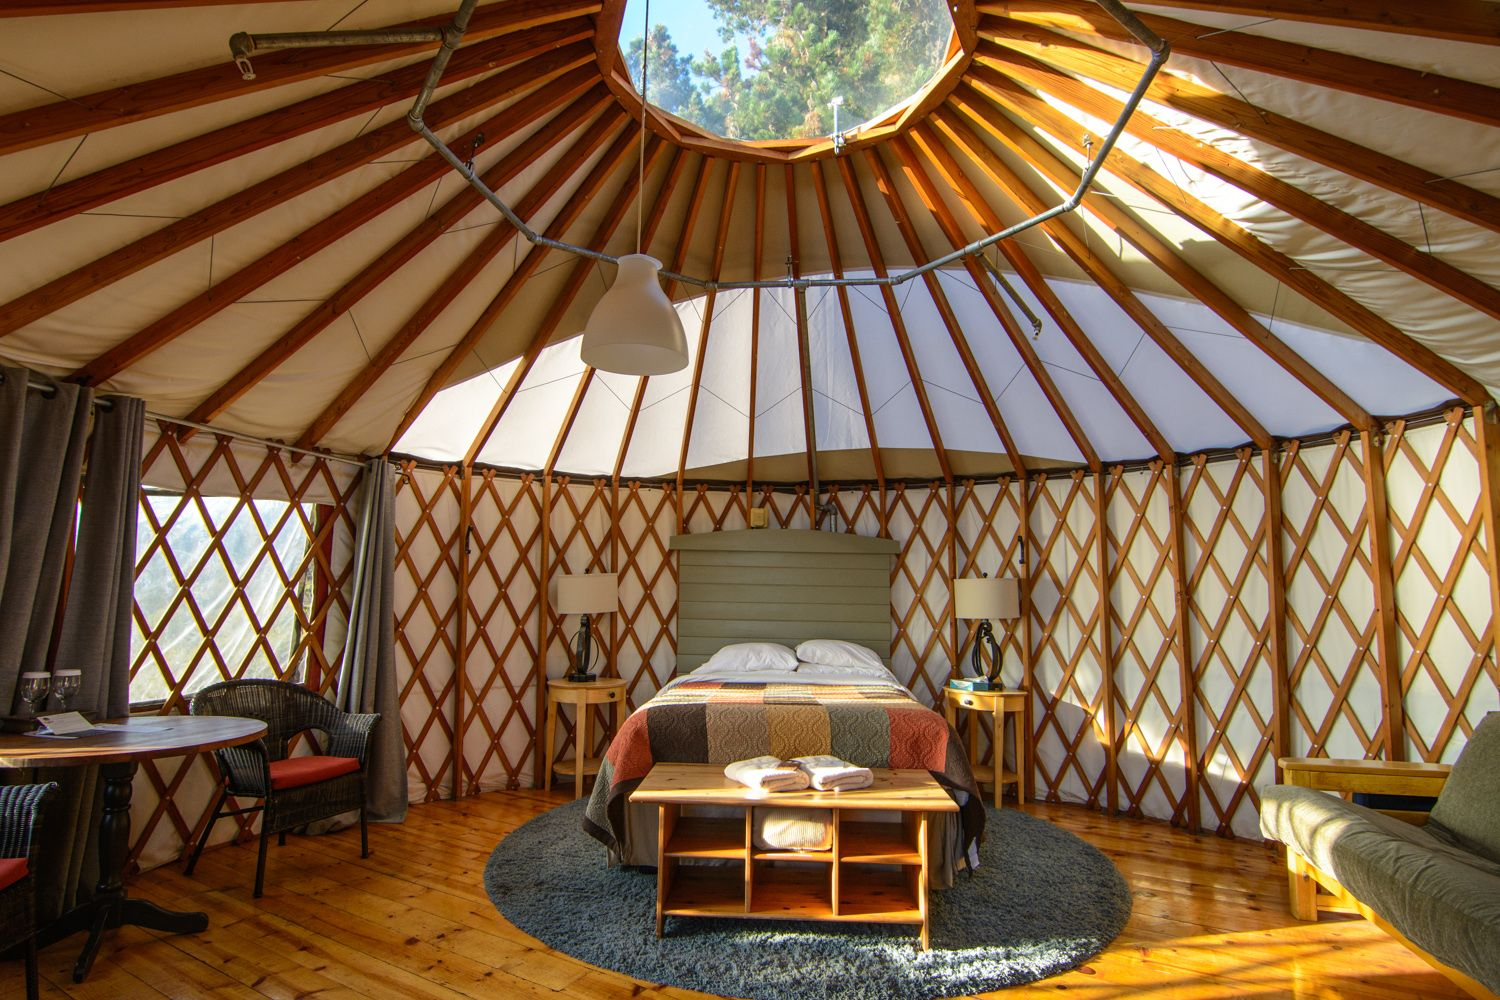 Treebones Resort Yurt Human Nest Big Sur California Big Sur Camping Big Sur Unique Hotels Stay in a yurt at treebones resort (big sur, ca). treebones resort yurt human nest big